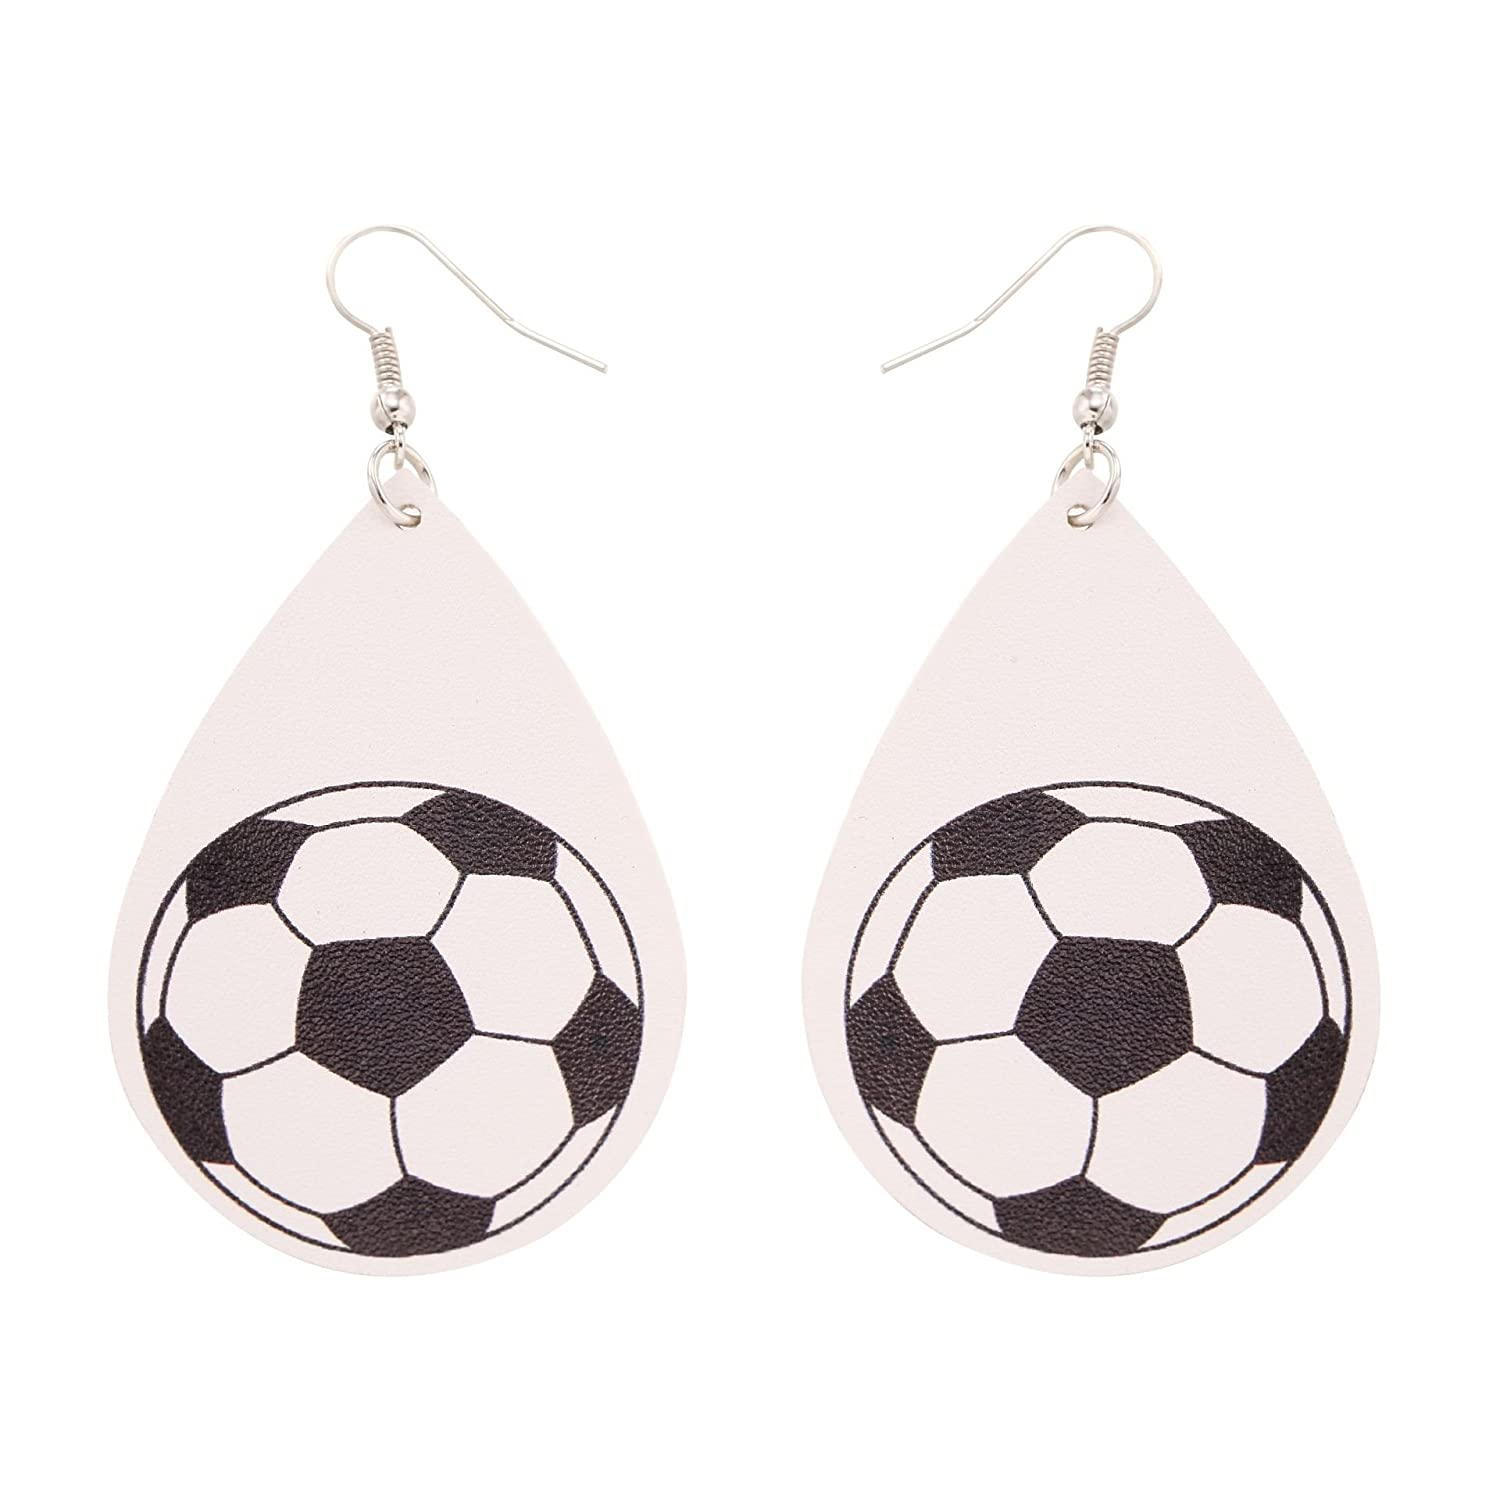 TIDOO Jewelry Womens Smooth Faux Leather Ball Printing Dangle Earrings for Girl